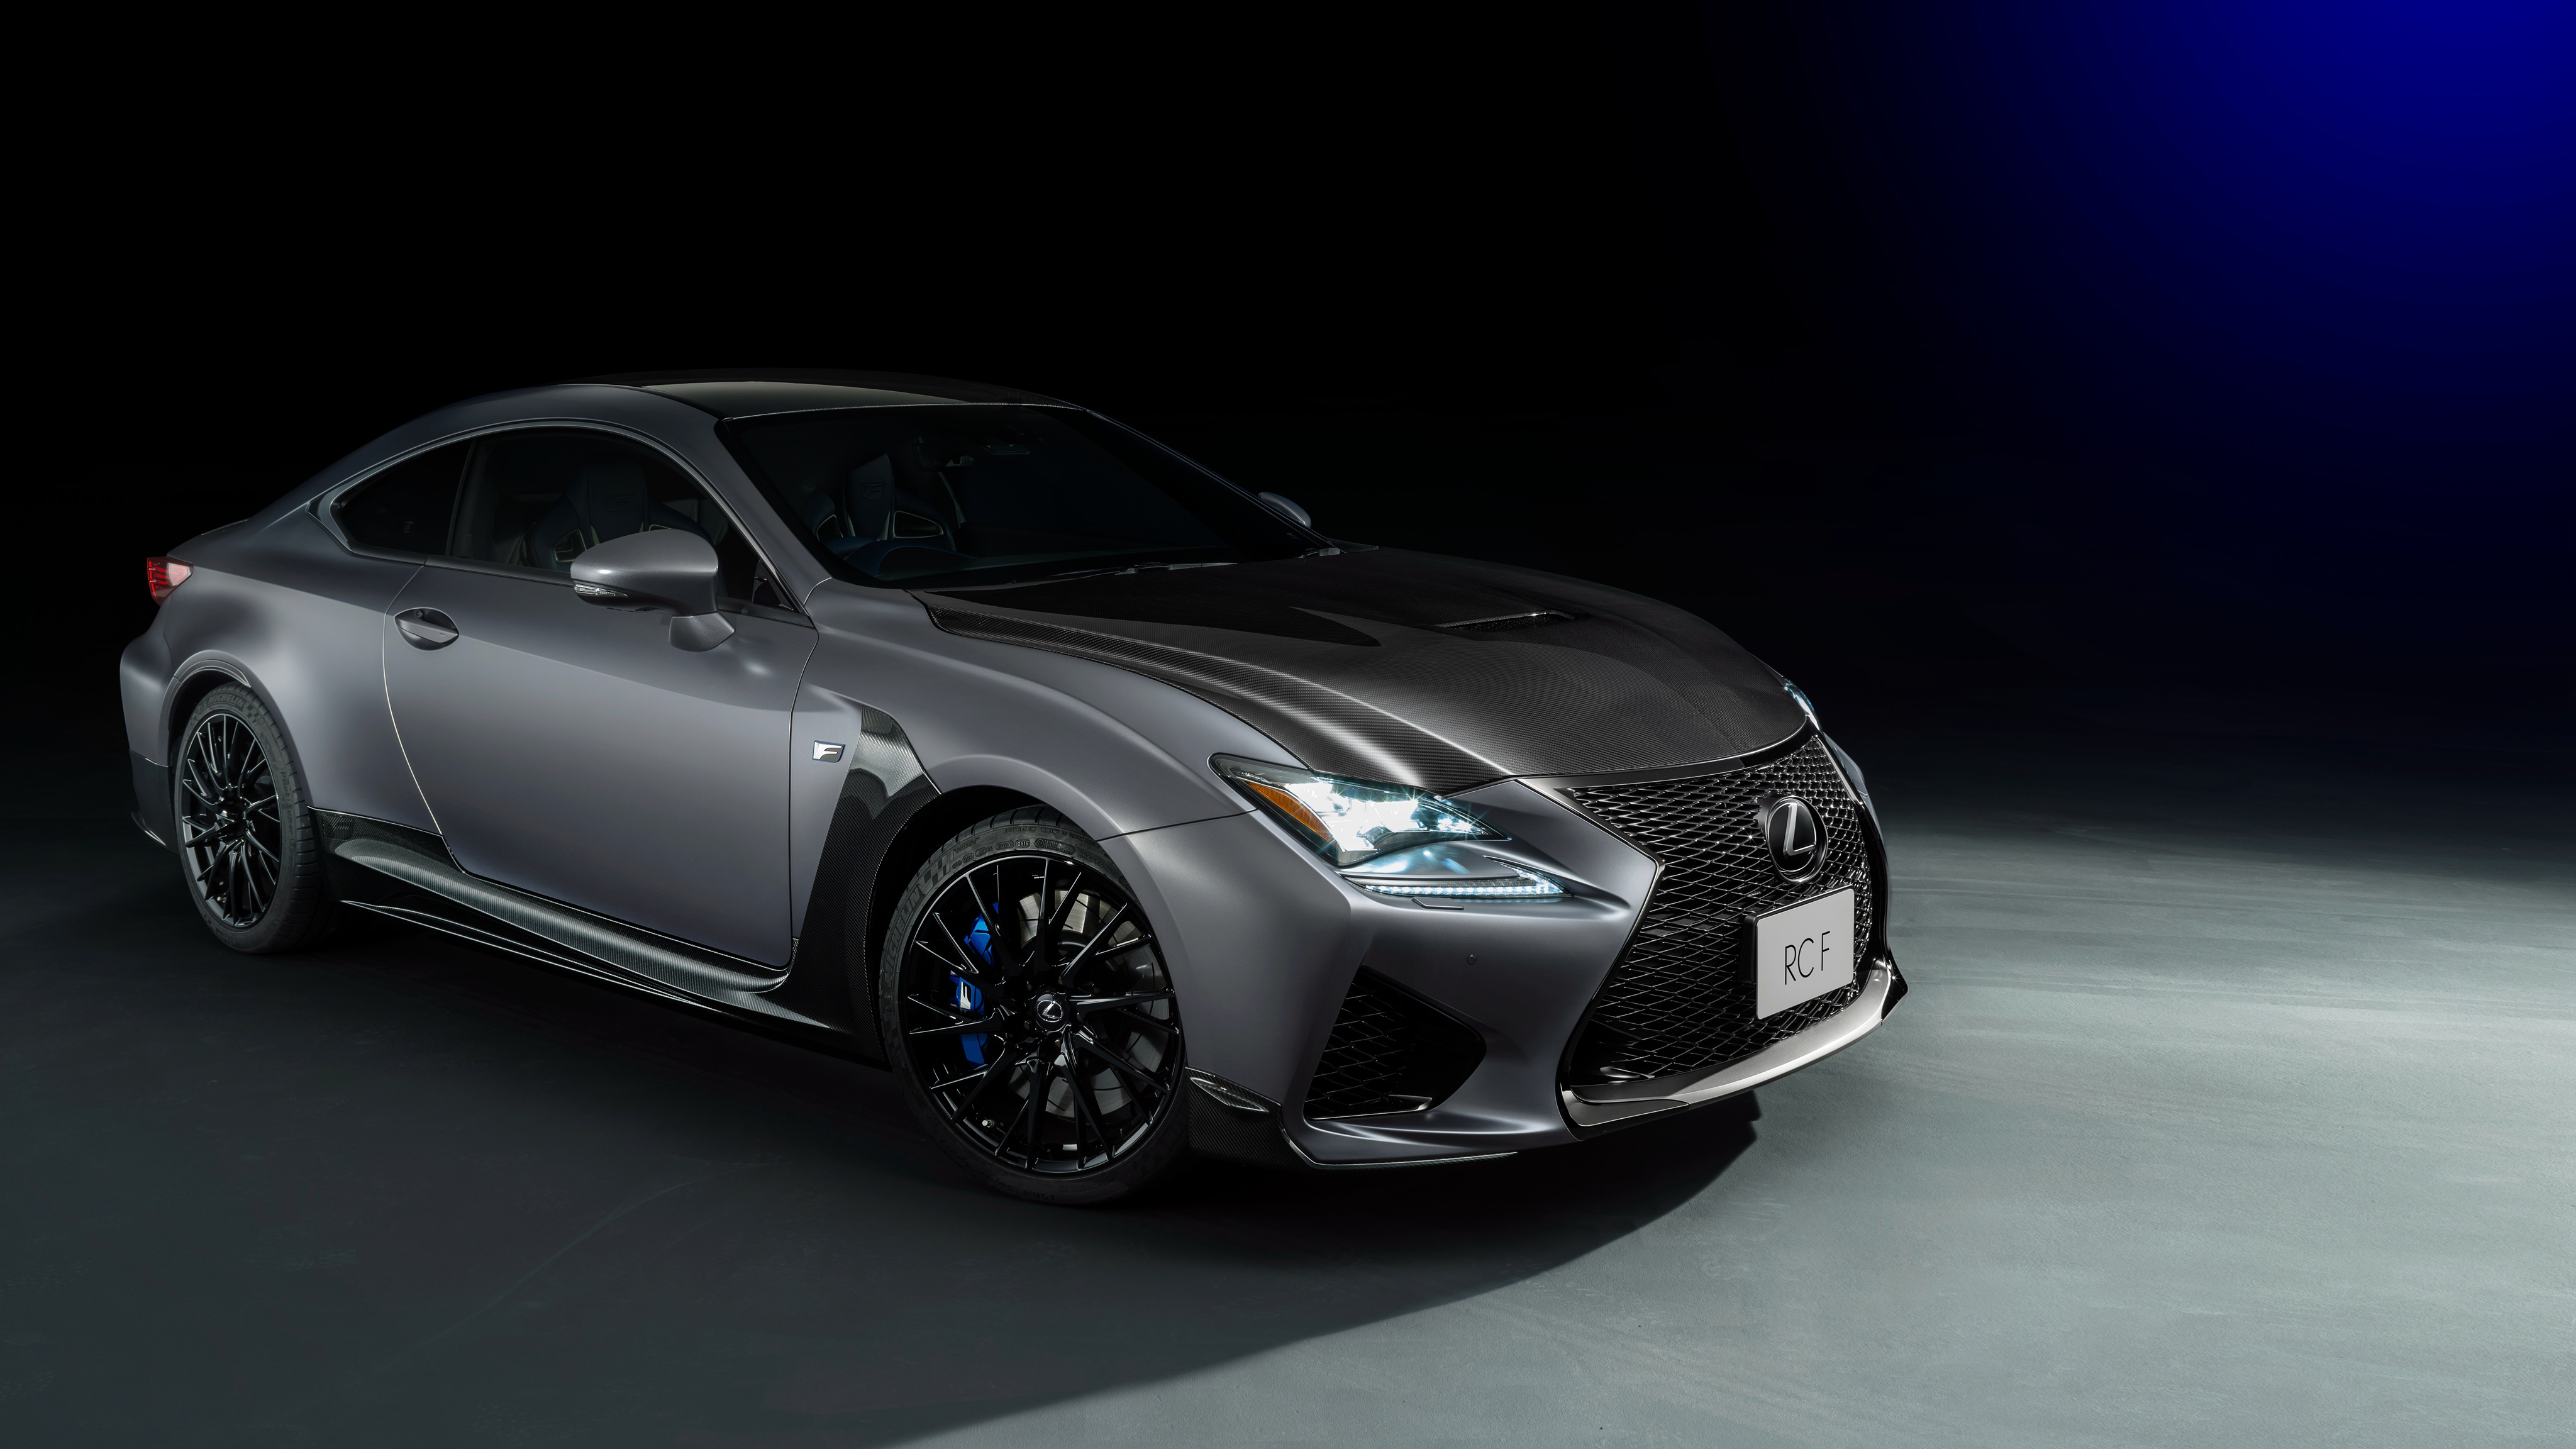 2018 Lexus RC F 10th Anniversary Limited Edition 4K